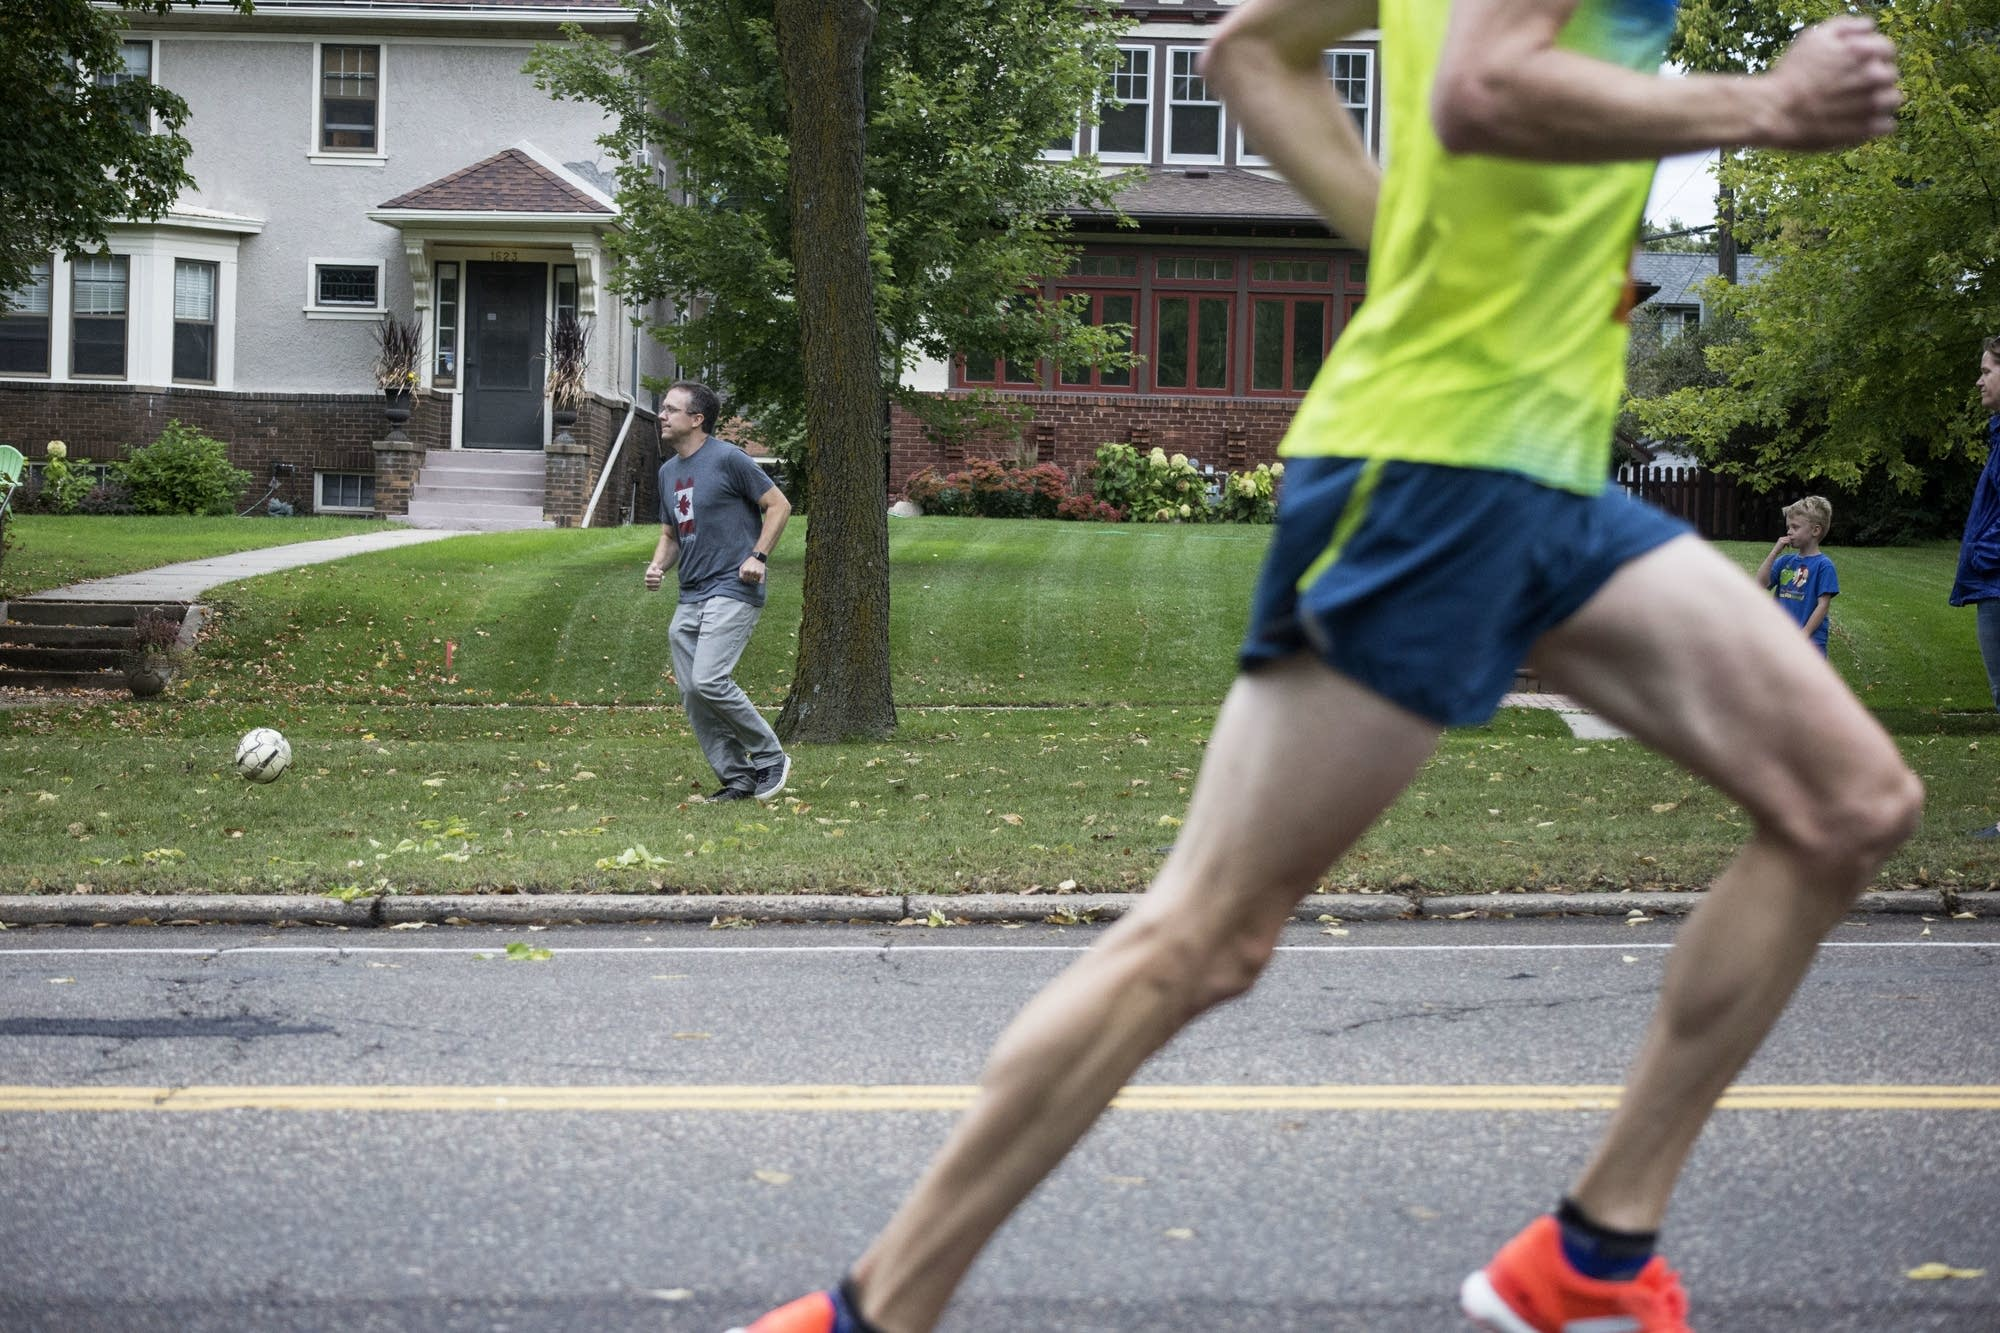 Spectators play as marathon runners pass on Sunday along Summit Avenue.